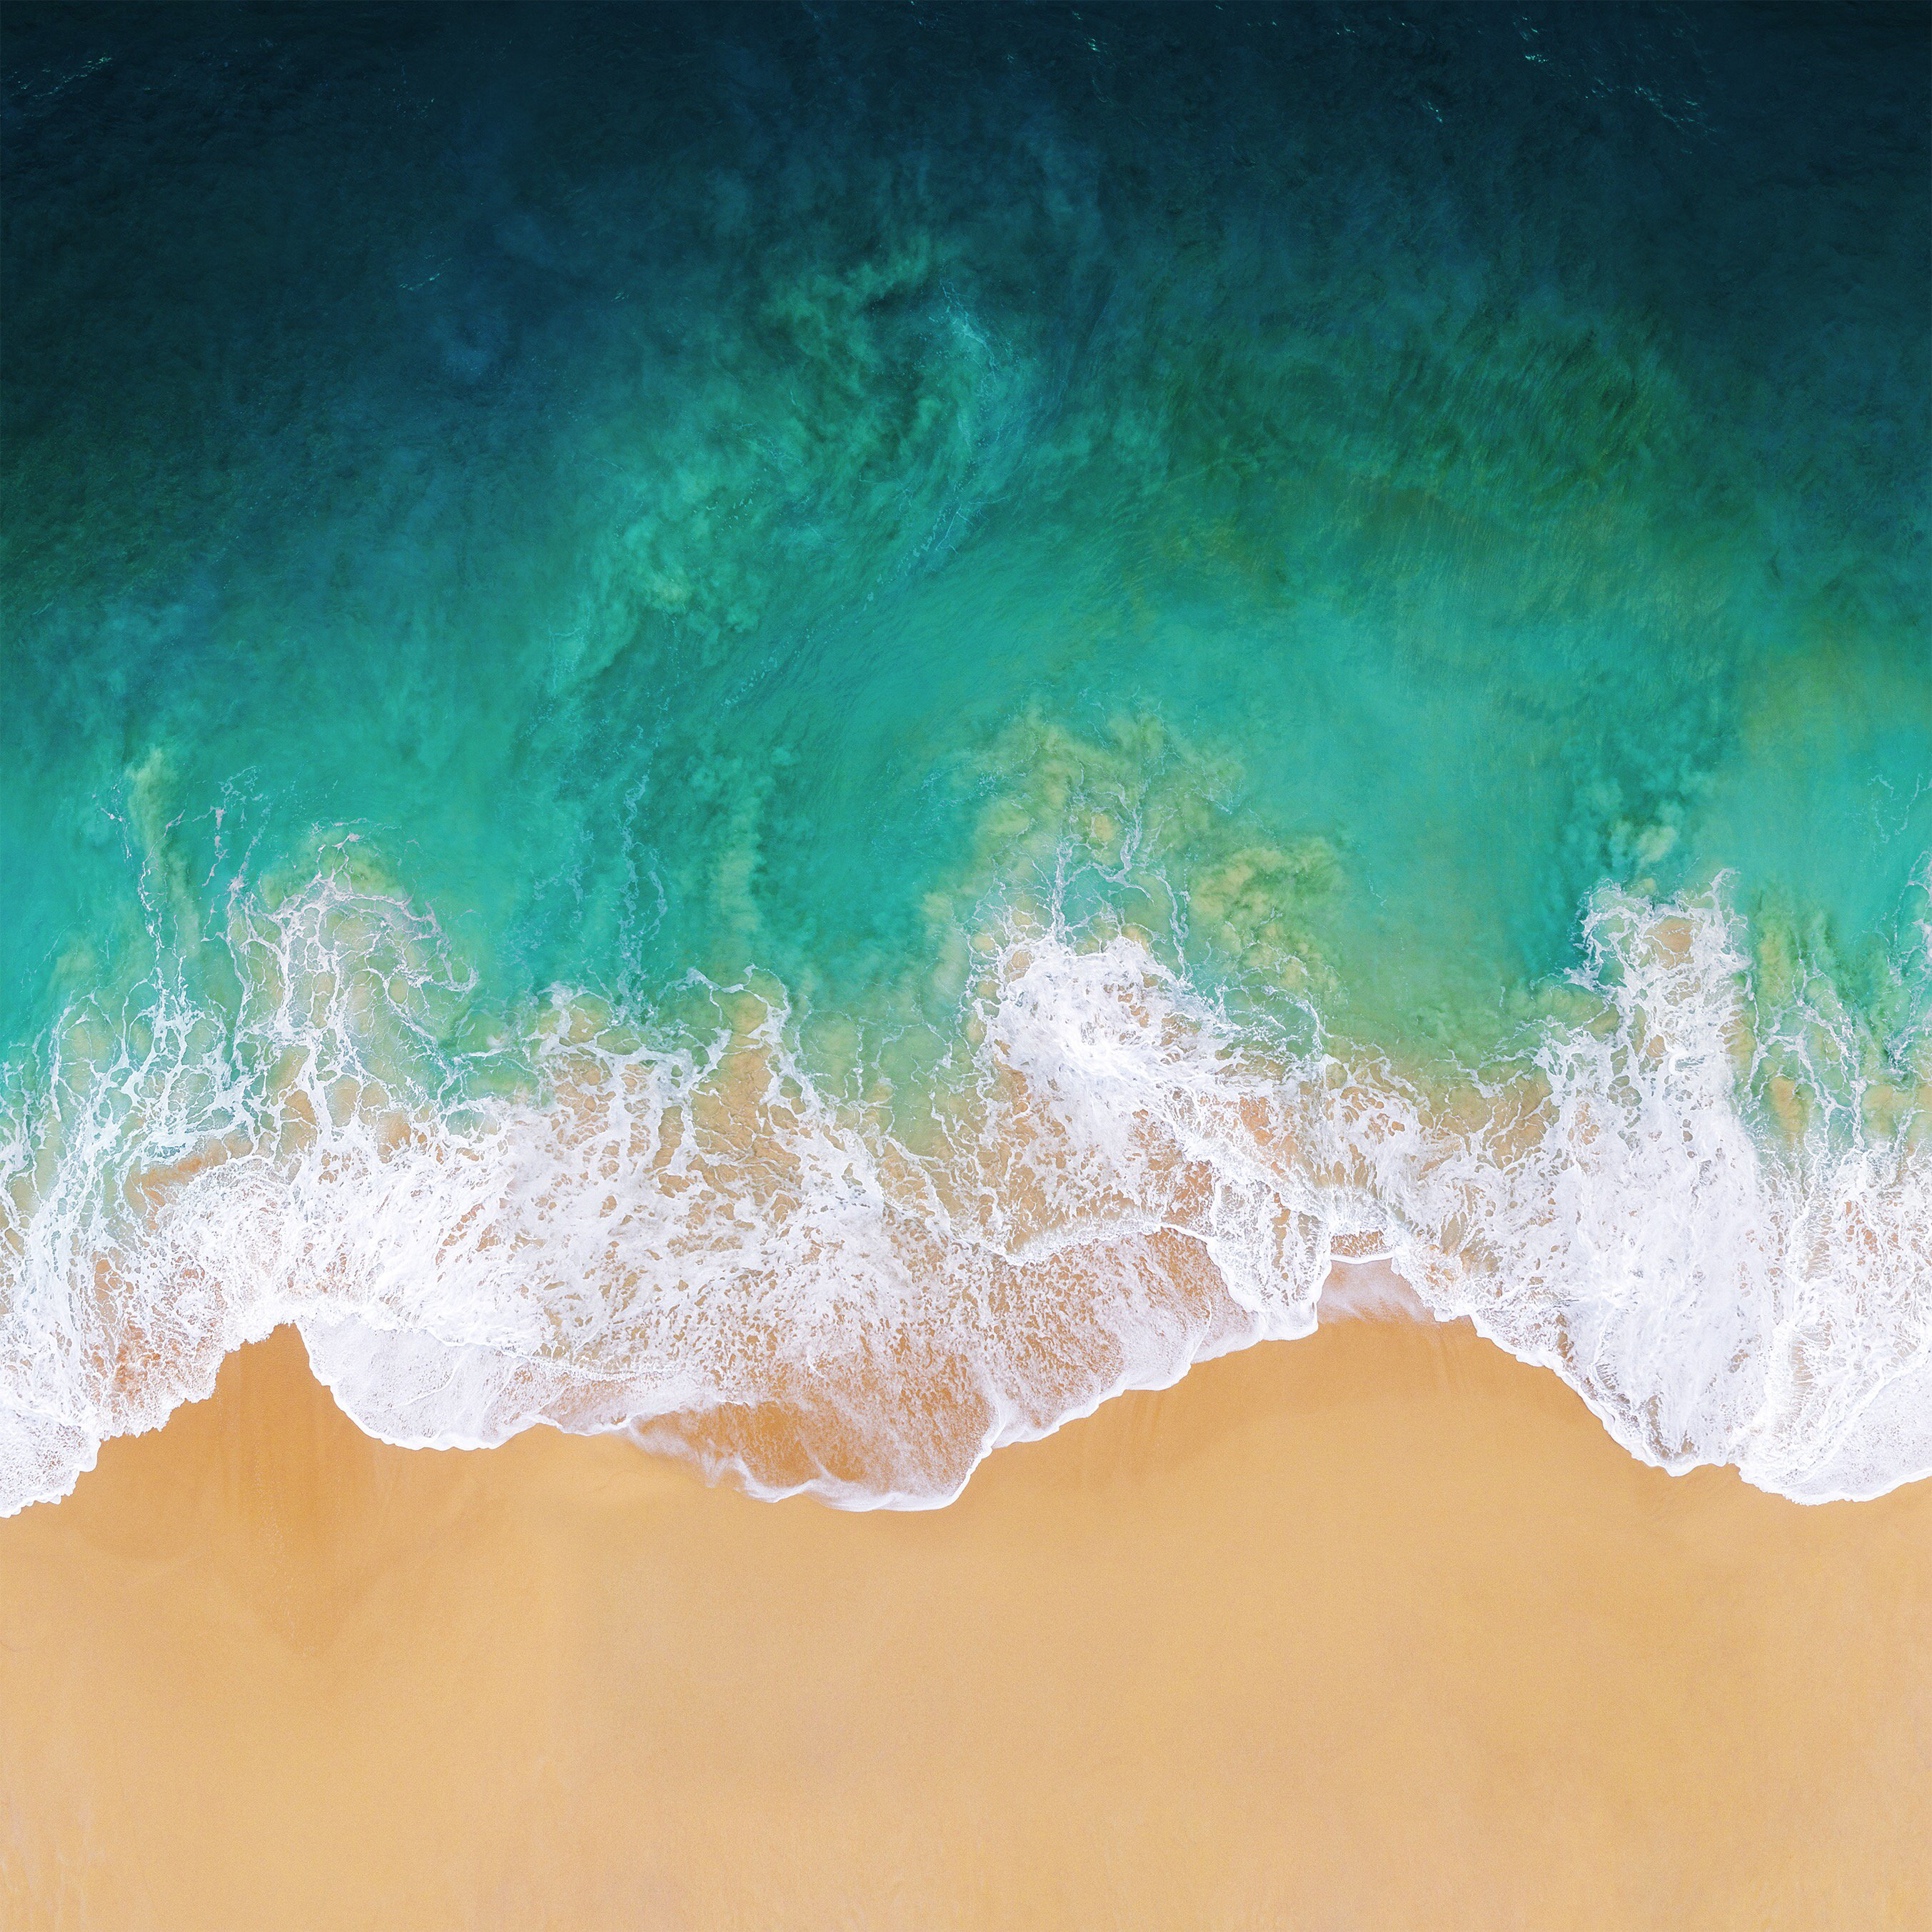 Grab the iOS 11 Default Wallpaper 2706x2706